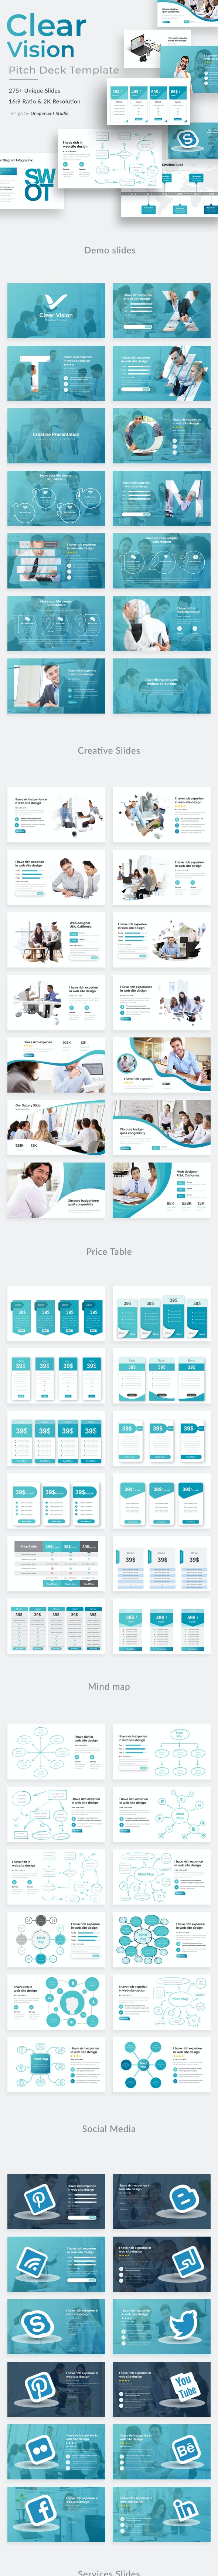 Clear Vision Pitch Deck Powerpoint Template - Business PowerPoint Templates